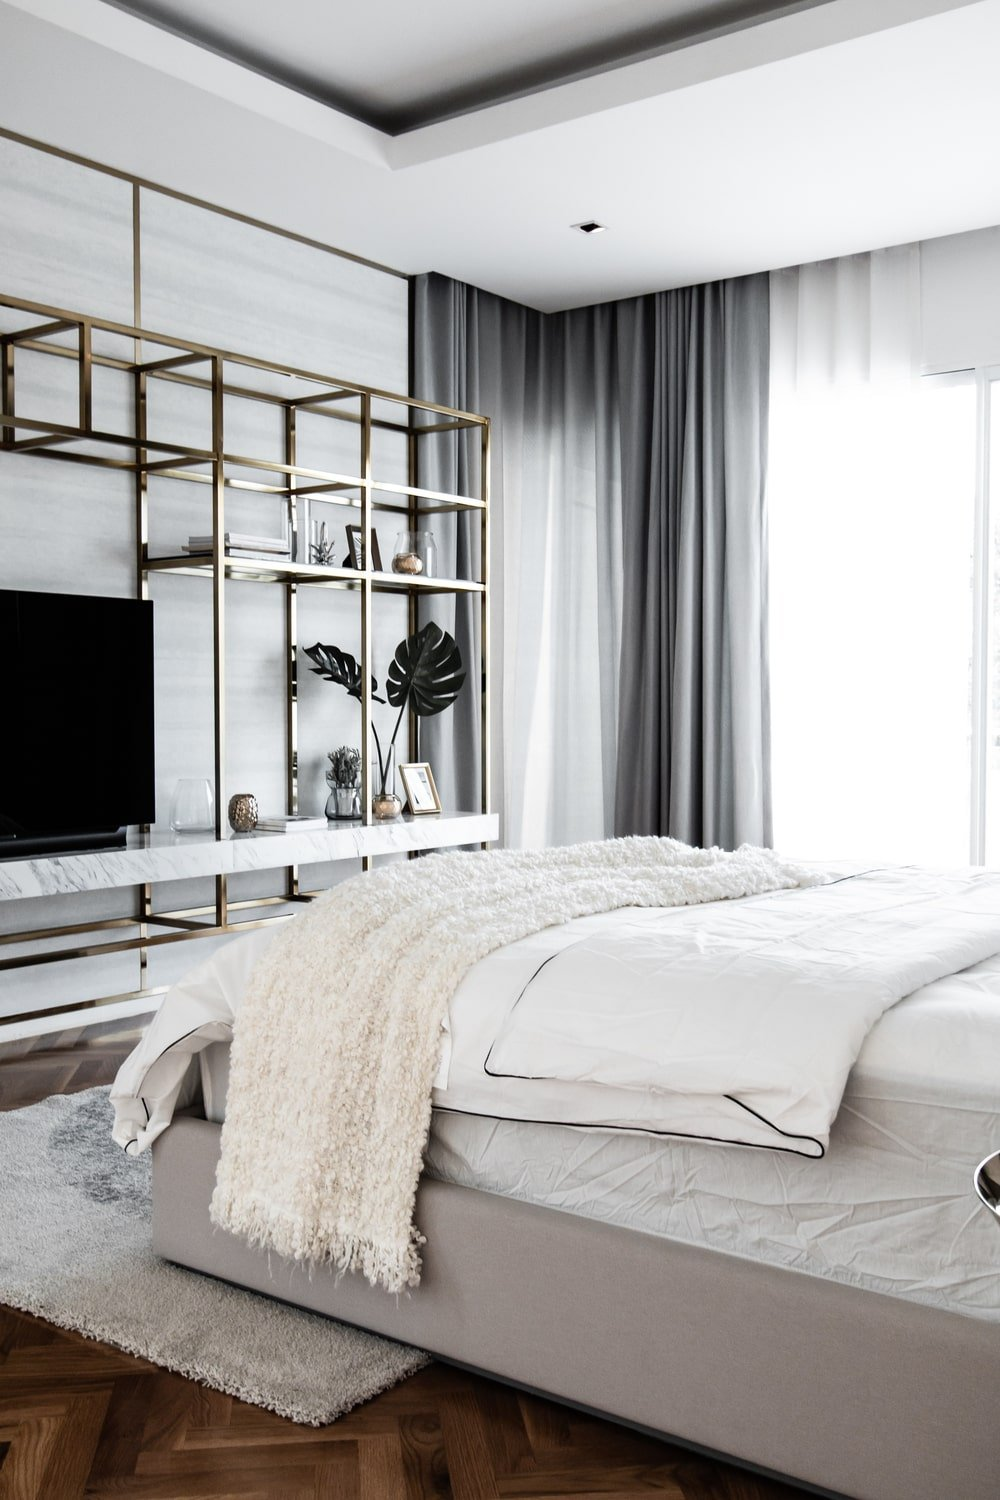 The bedroom has a golden mounted shelving system across from the bed.